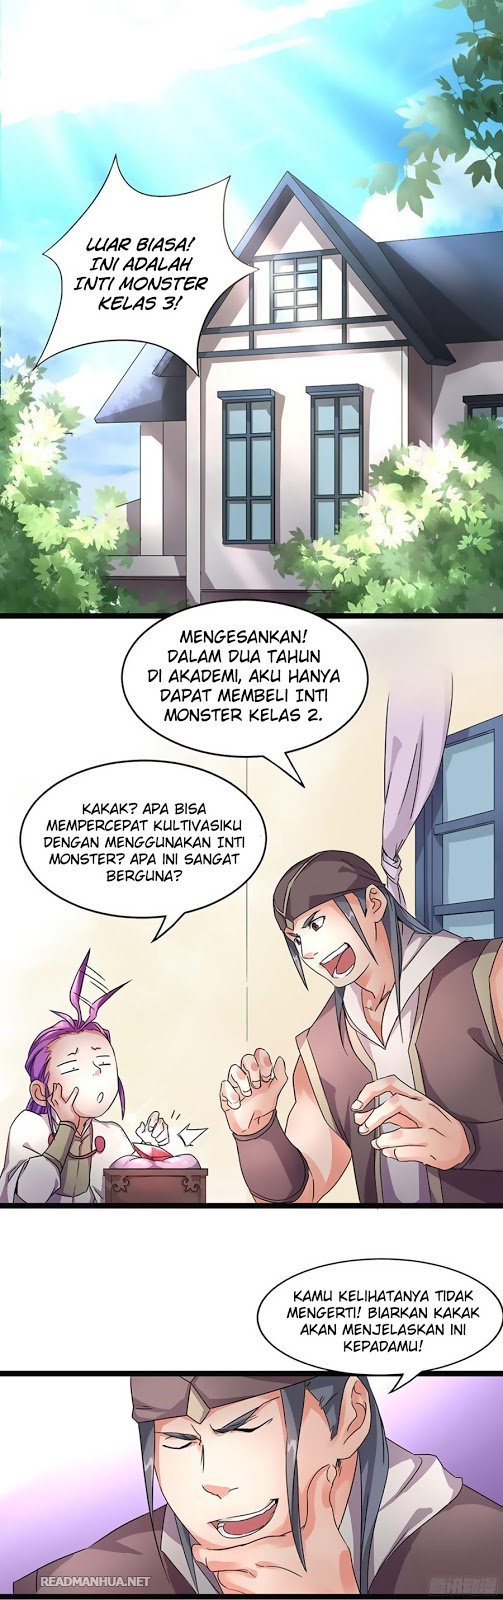 Chaotic Sword God Chapter 6 Bahasa Indonesia